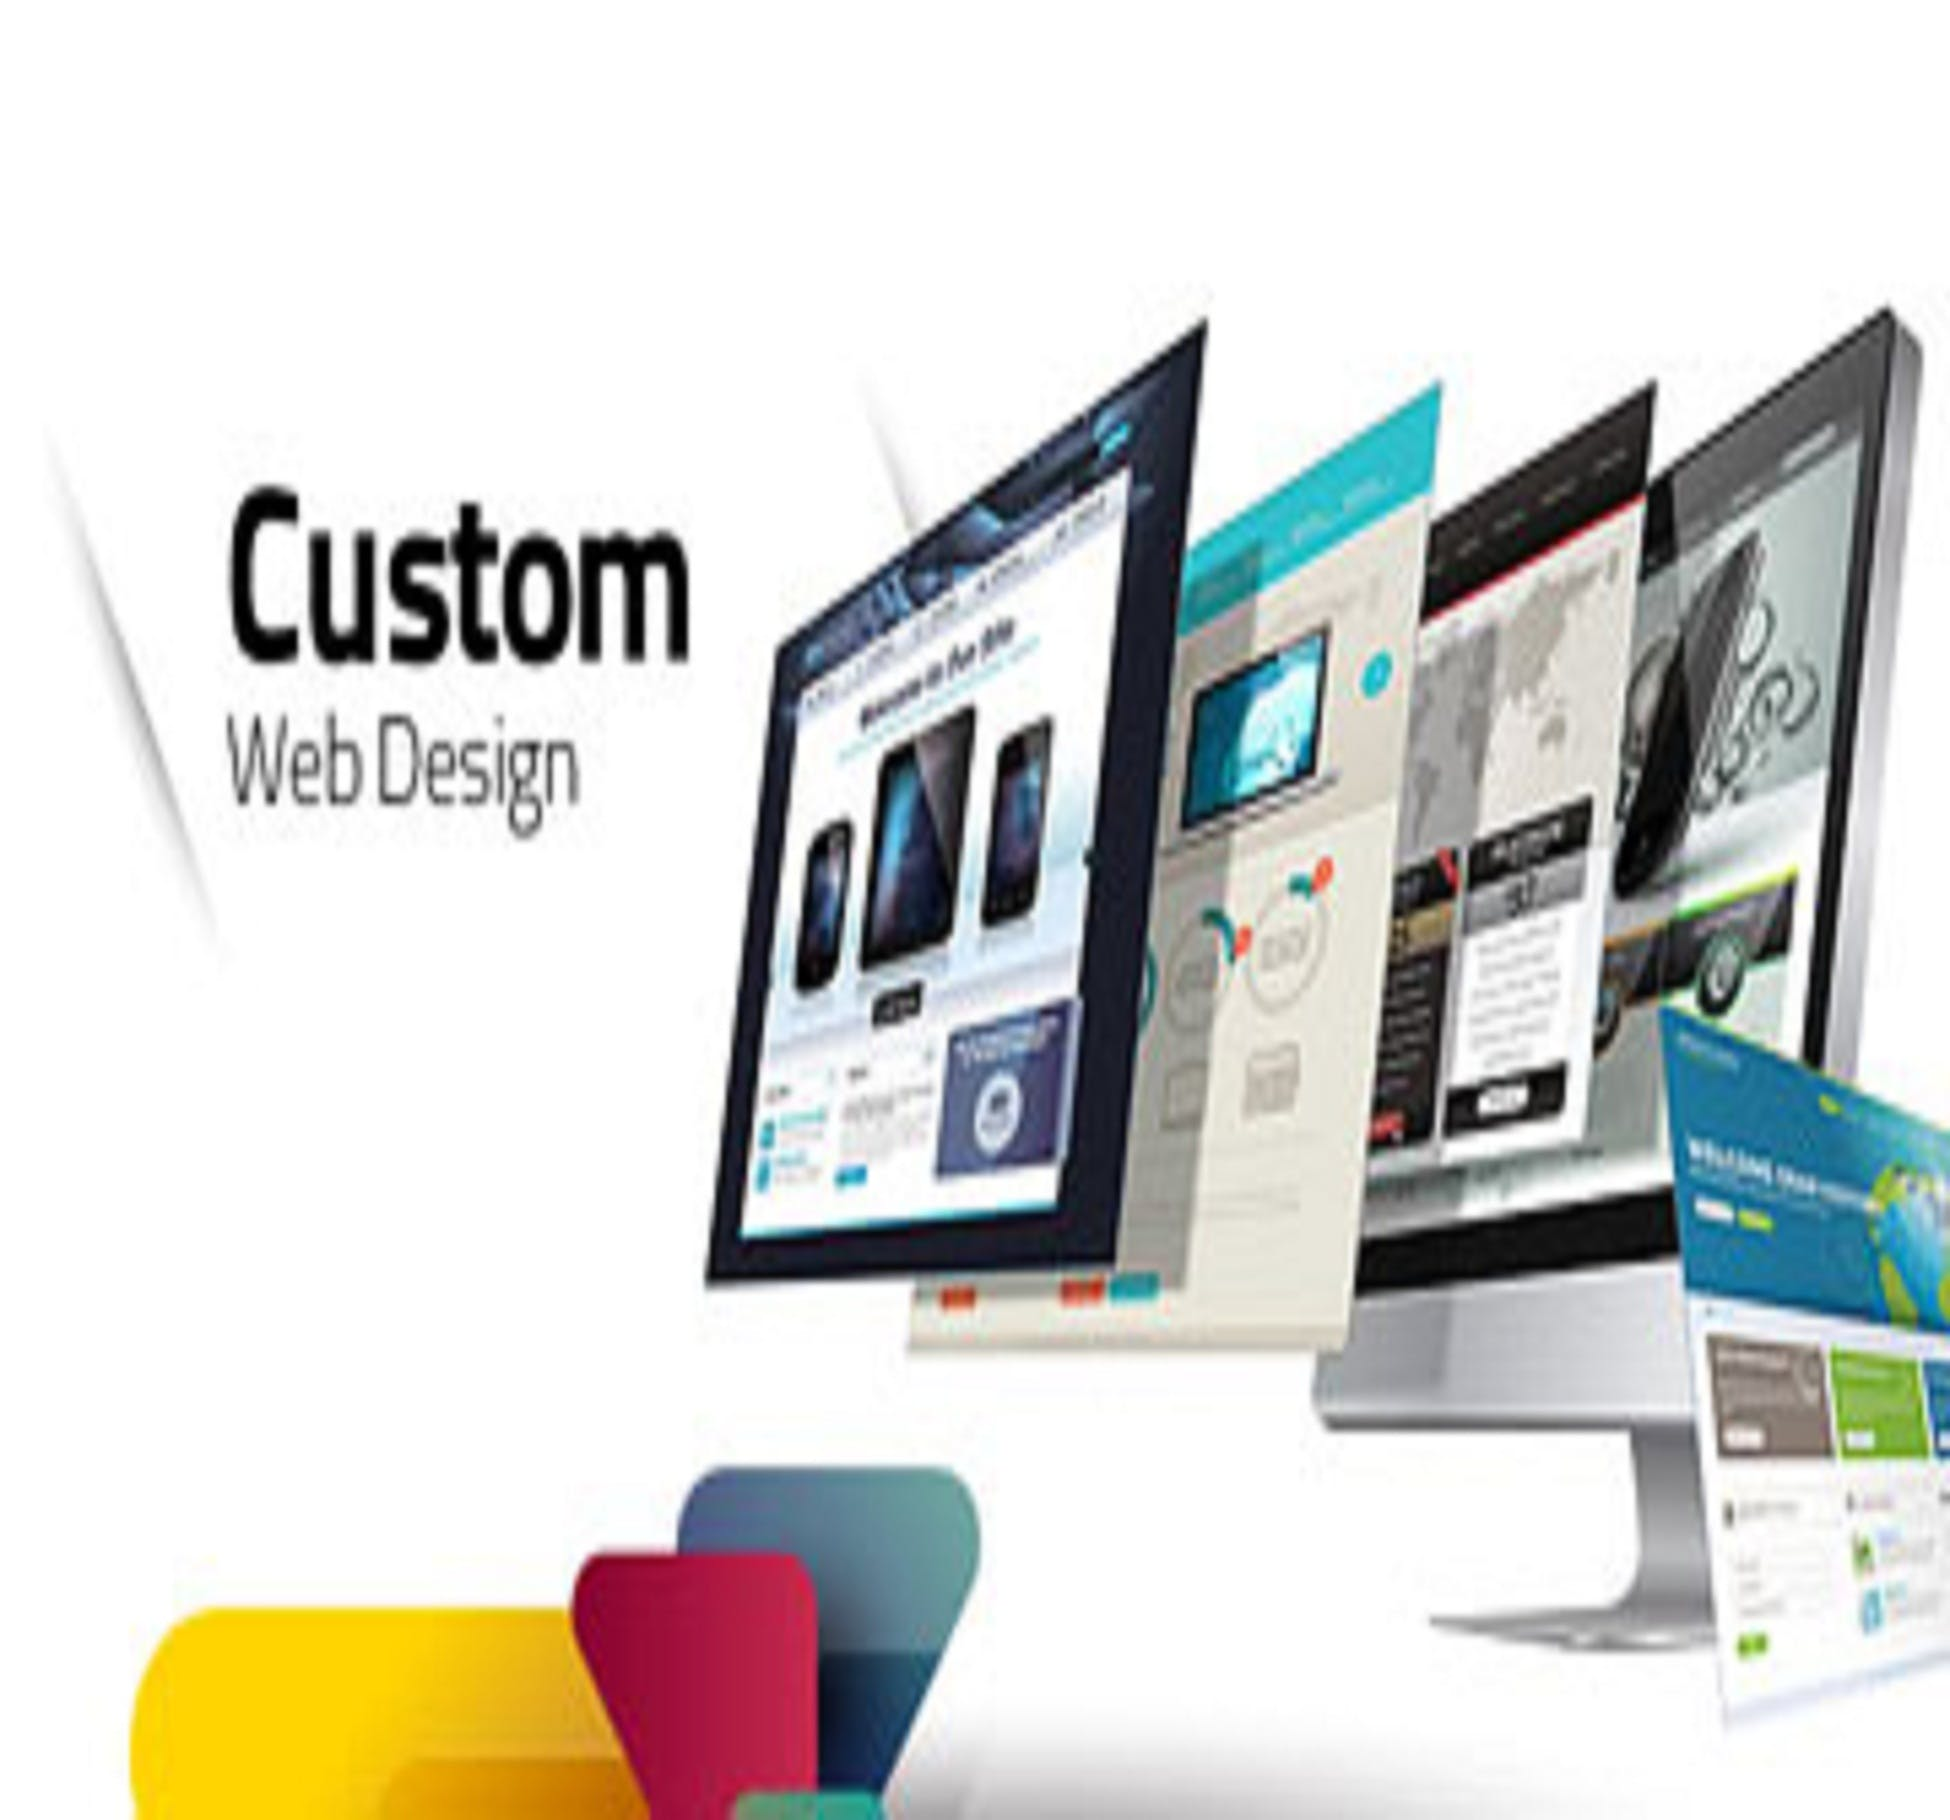 Free stock photo of custom website designing company usa, Web design firm, web designing firm usa